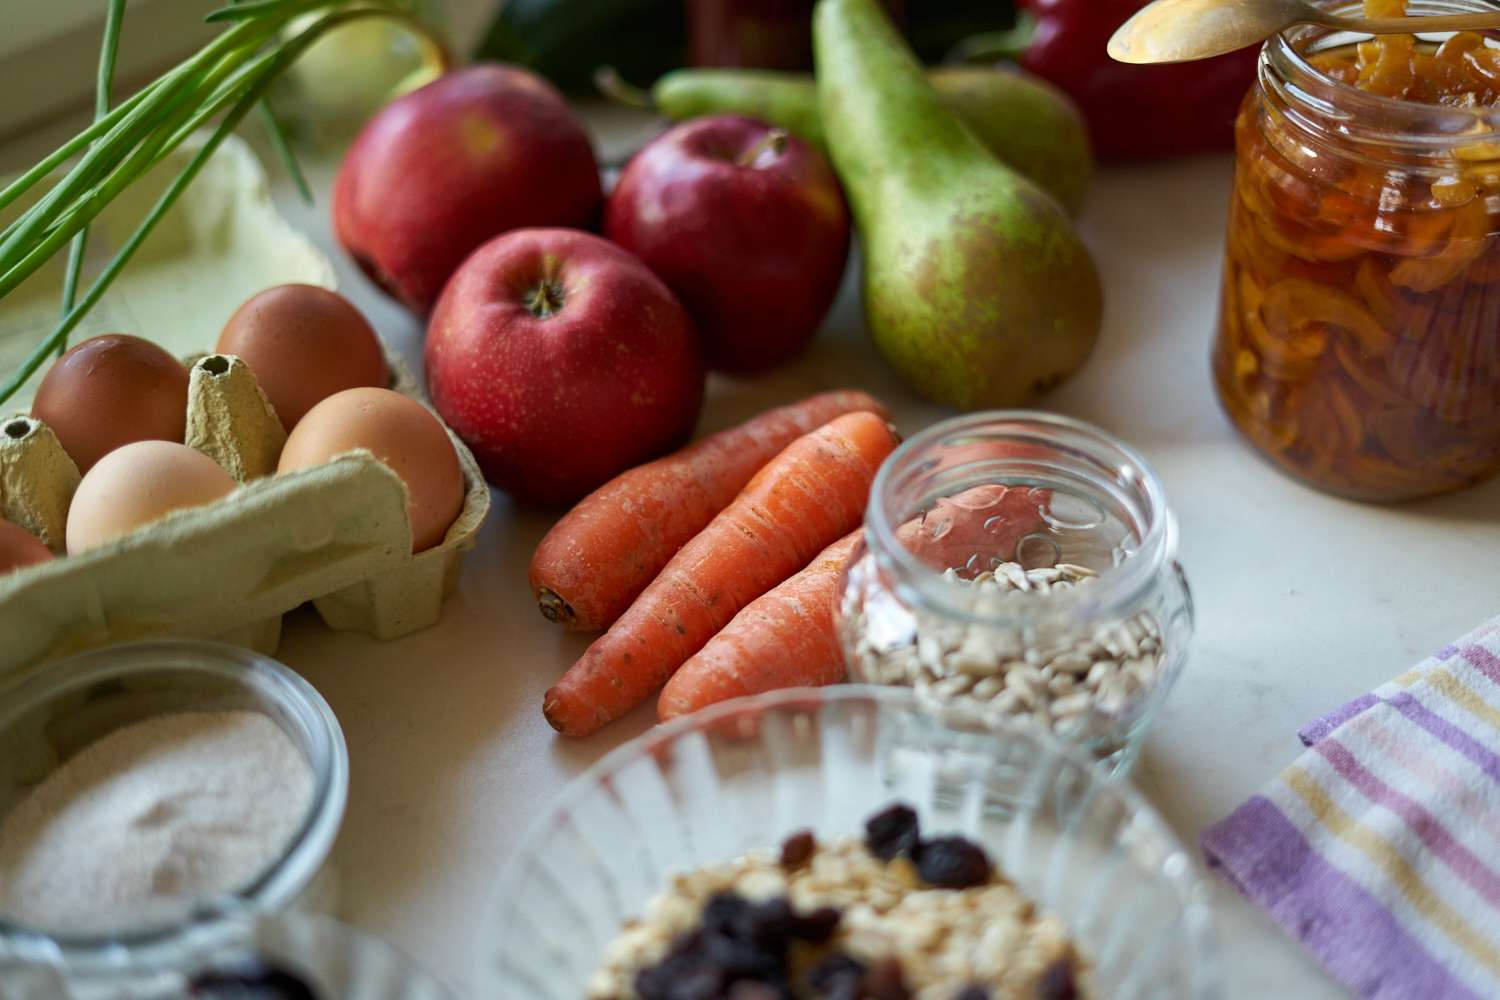 diverse display of healthy foods on counter, including fruits, veggies, eggs, and grains